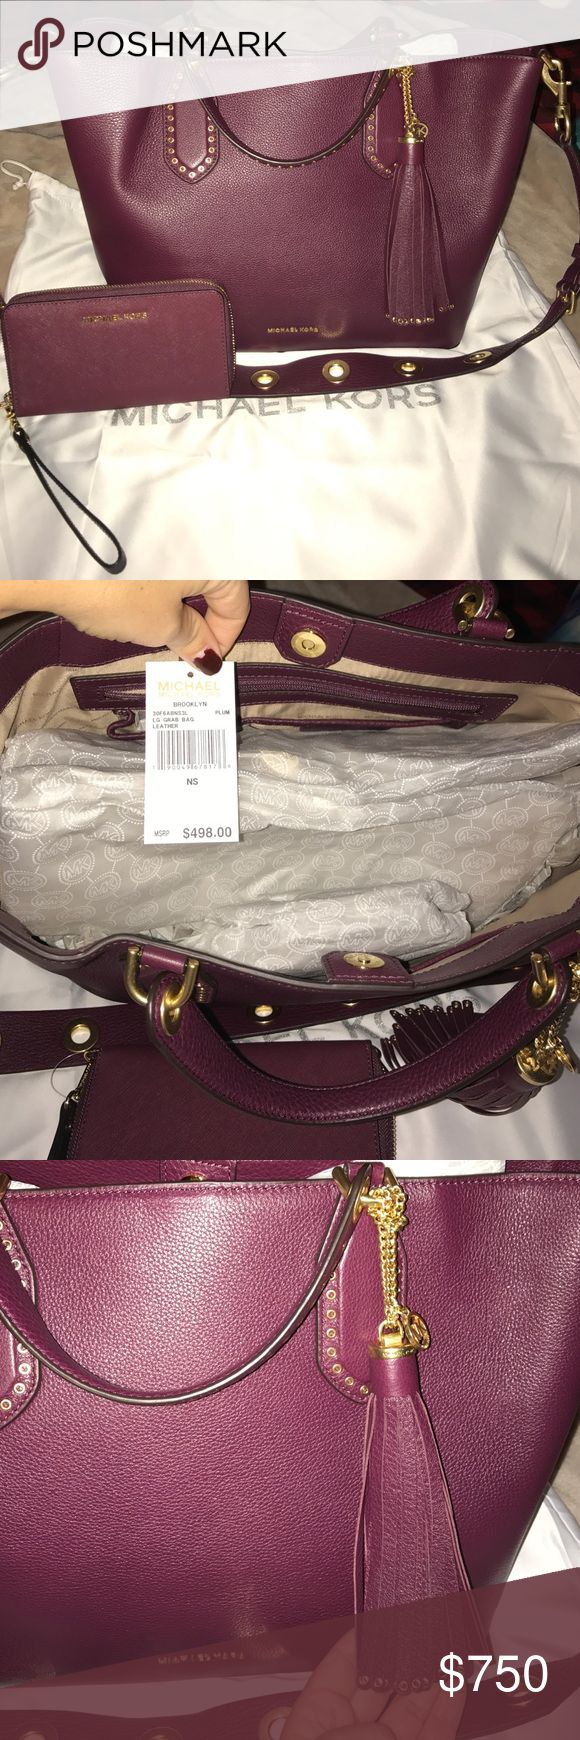 NWT Michael Kors Brooklyn large plum bag & wallet New with tags, SOLD OUT, Gorgeous bag and wallet. 100% authentic Michael Kors. Plum color, impossible to find. Gold grommet details, adjustable and detachable shoulder strap. Bag $498, wallet $108. Dust bag included. No trades and price is firm as this item is rare and HTF. Michael Kors Bags Shoulder Bags